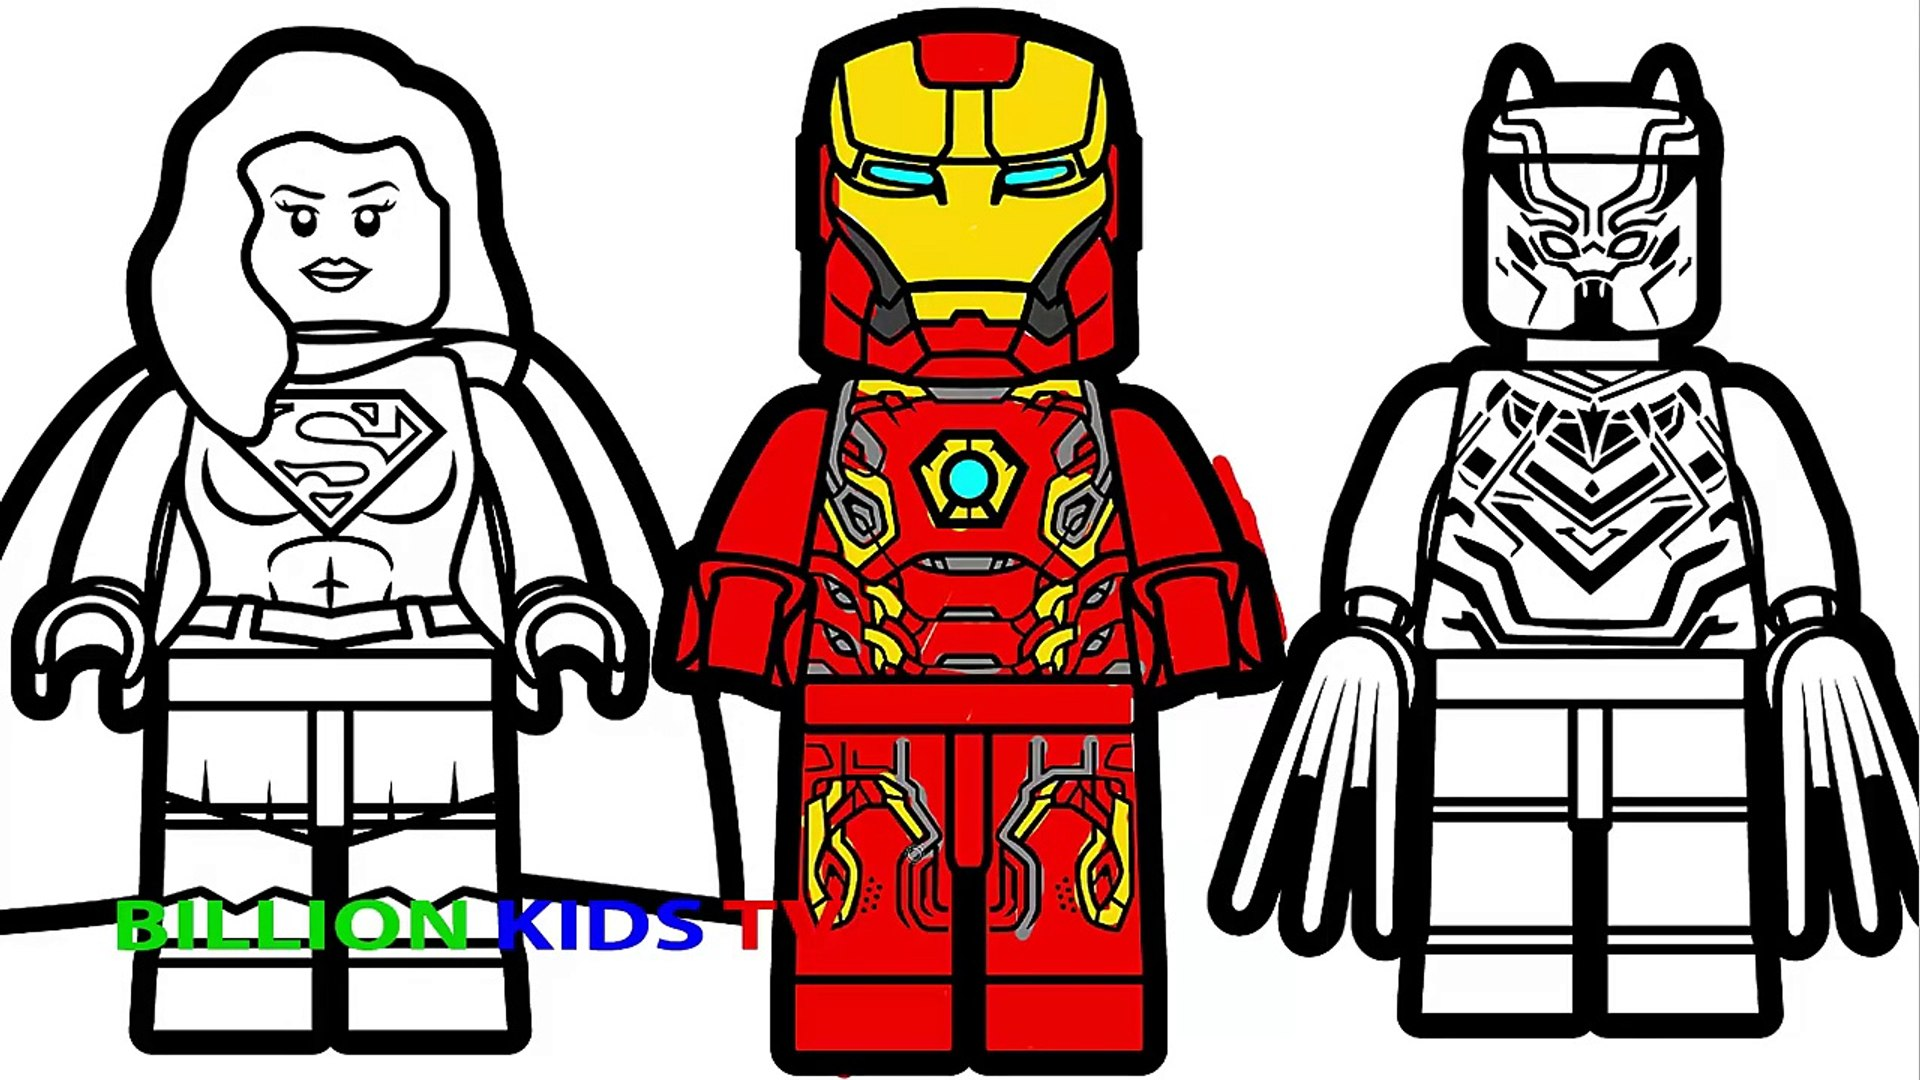 Lego Iron Man vs Lego Supergirl vs Lego Black Panther Coloring Book  Coloring Pages Kids Fun Art